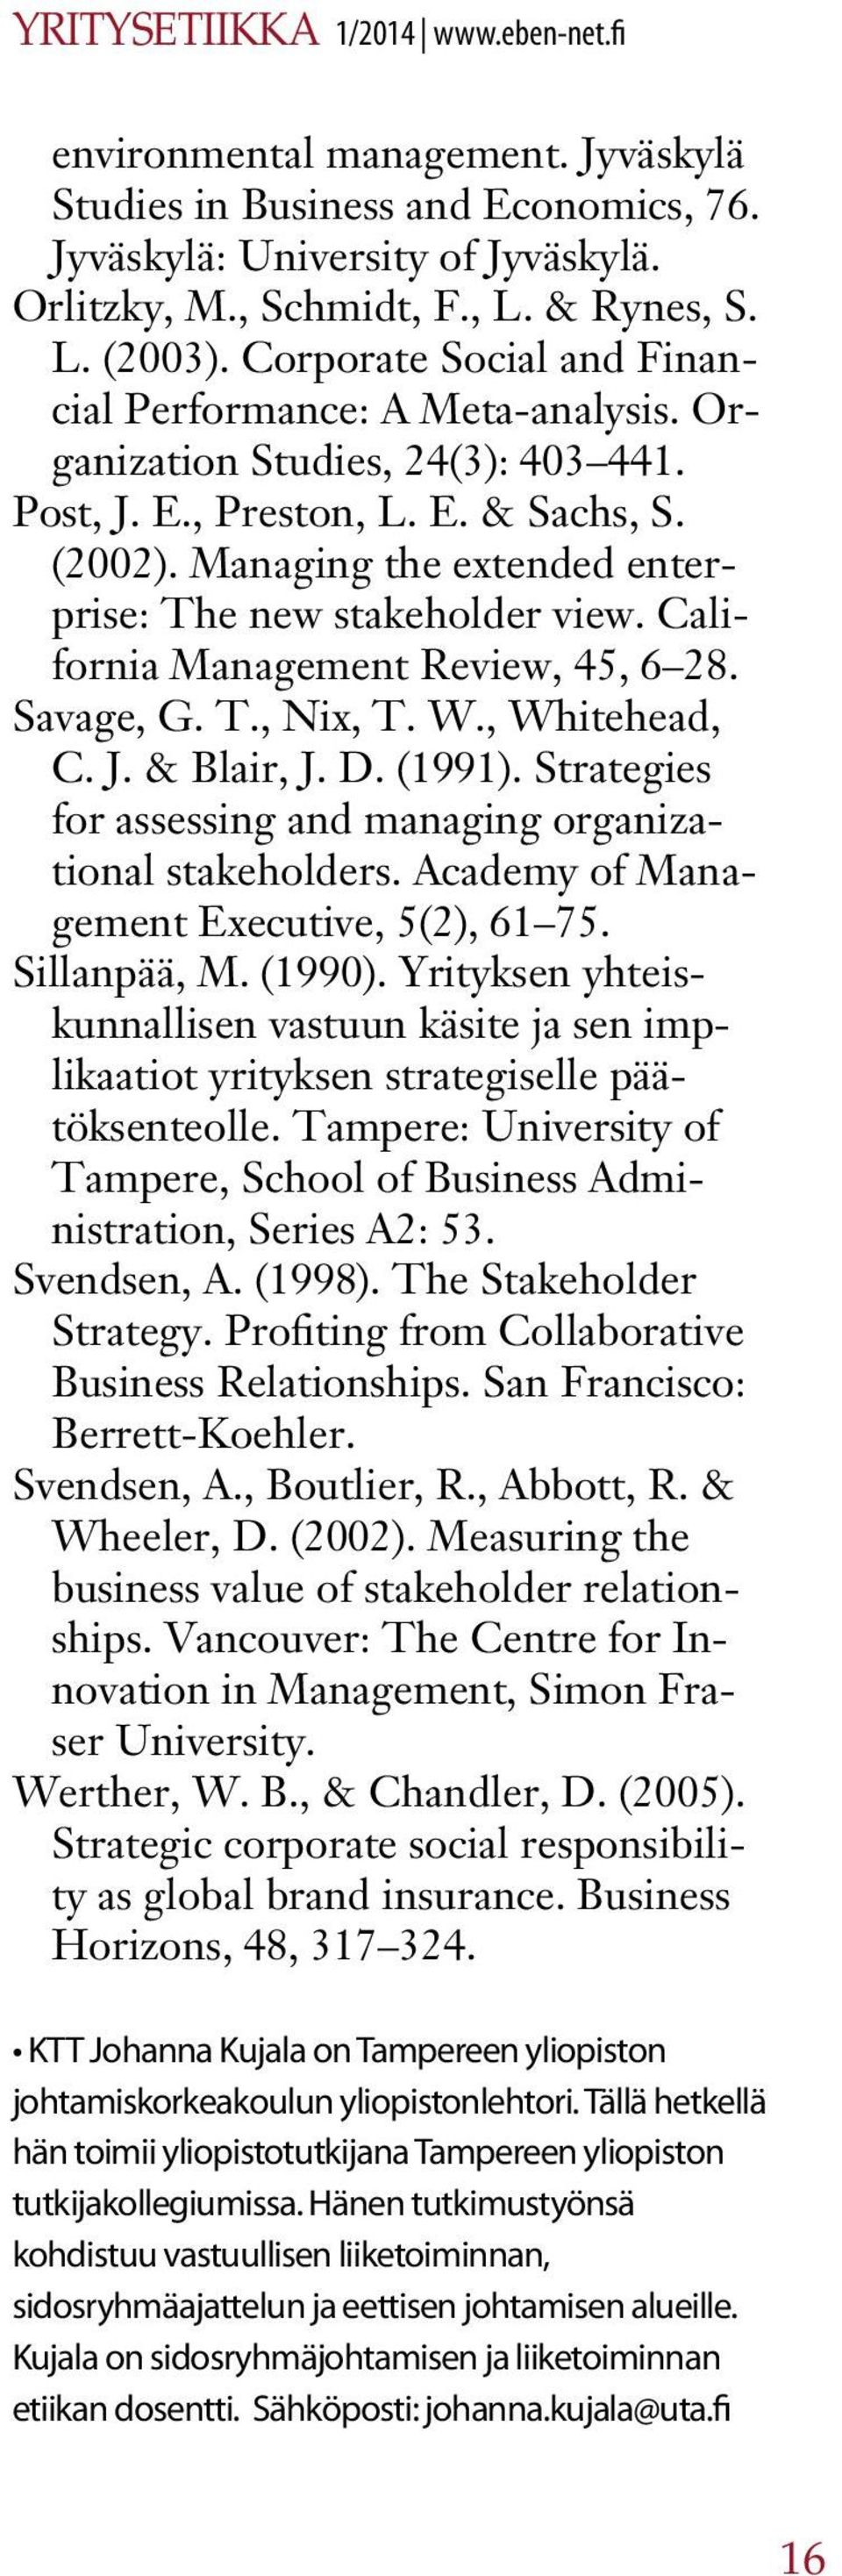 Managing the extended enterprise: The new stakeholder view. California Management Review, 45, 6 28. Savage, G. T., Nix, T. W., Whitehead, C. J. & Blair, J. D. (1991).